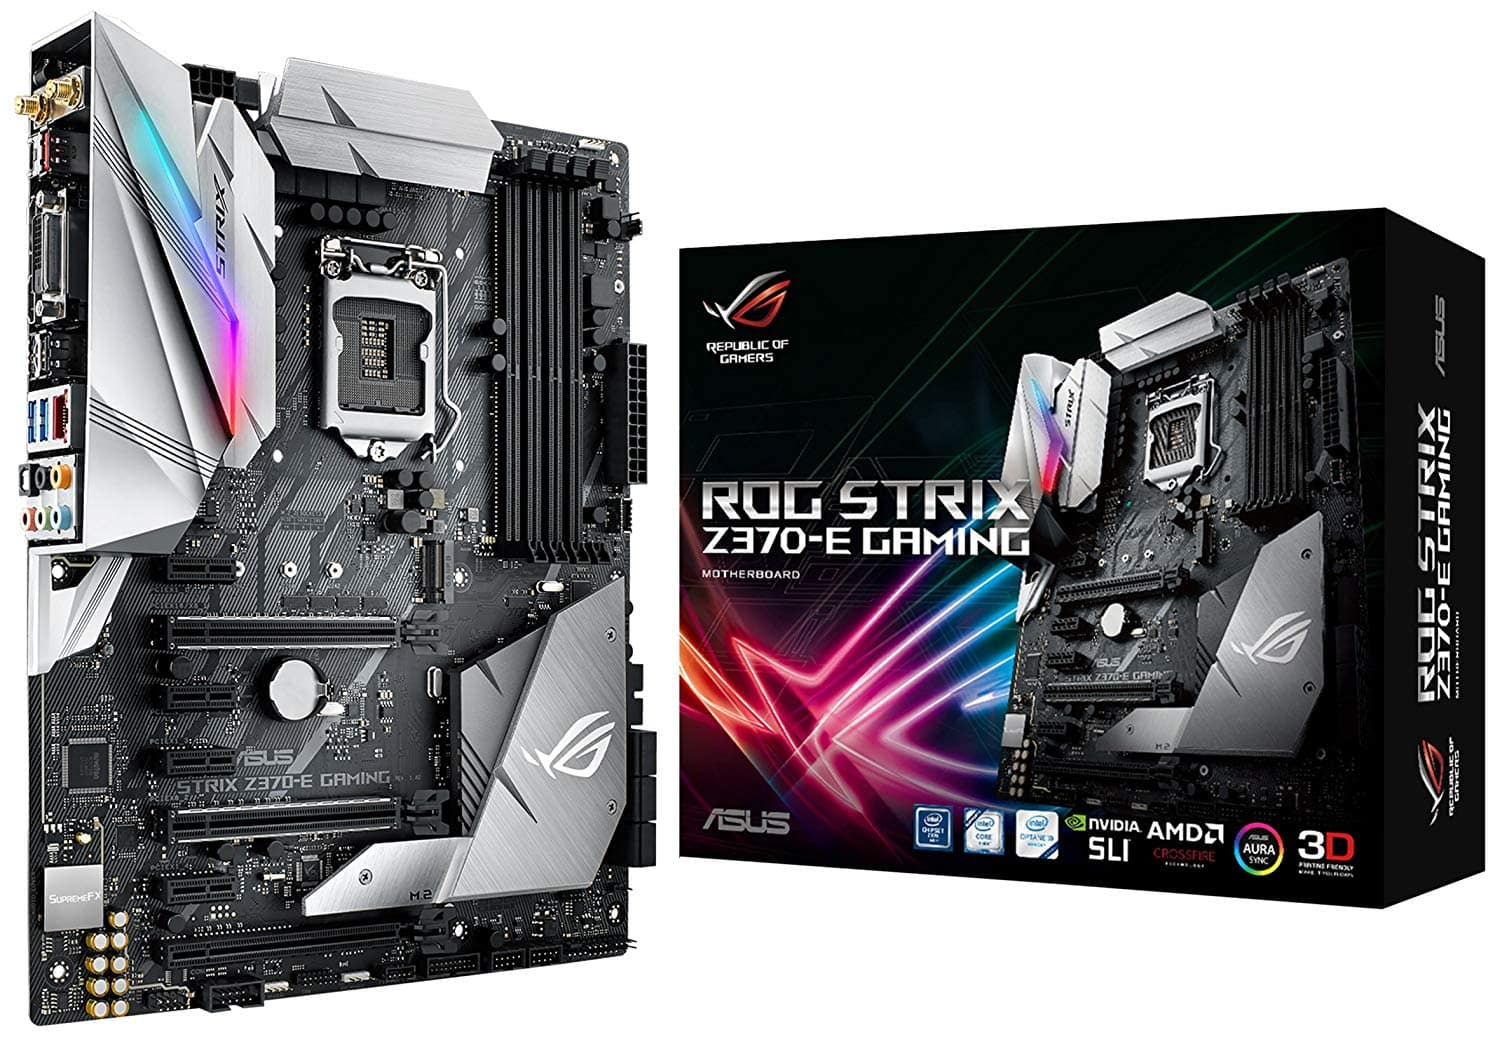 ASUS ROG STRIX Z370-E GAMING LGA1151 DDR4 DP HDMI DVI M.2 Z370 ATX Motherboard with onboard 802.11ac WiFi and USB 3.1 for 8th Generation Intel Core Processors $149.97